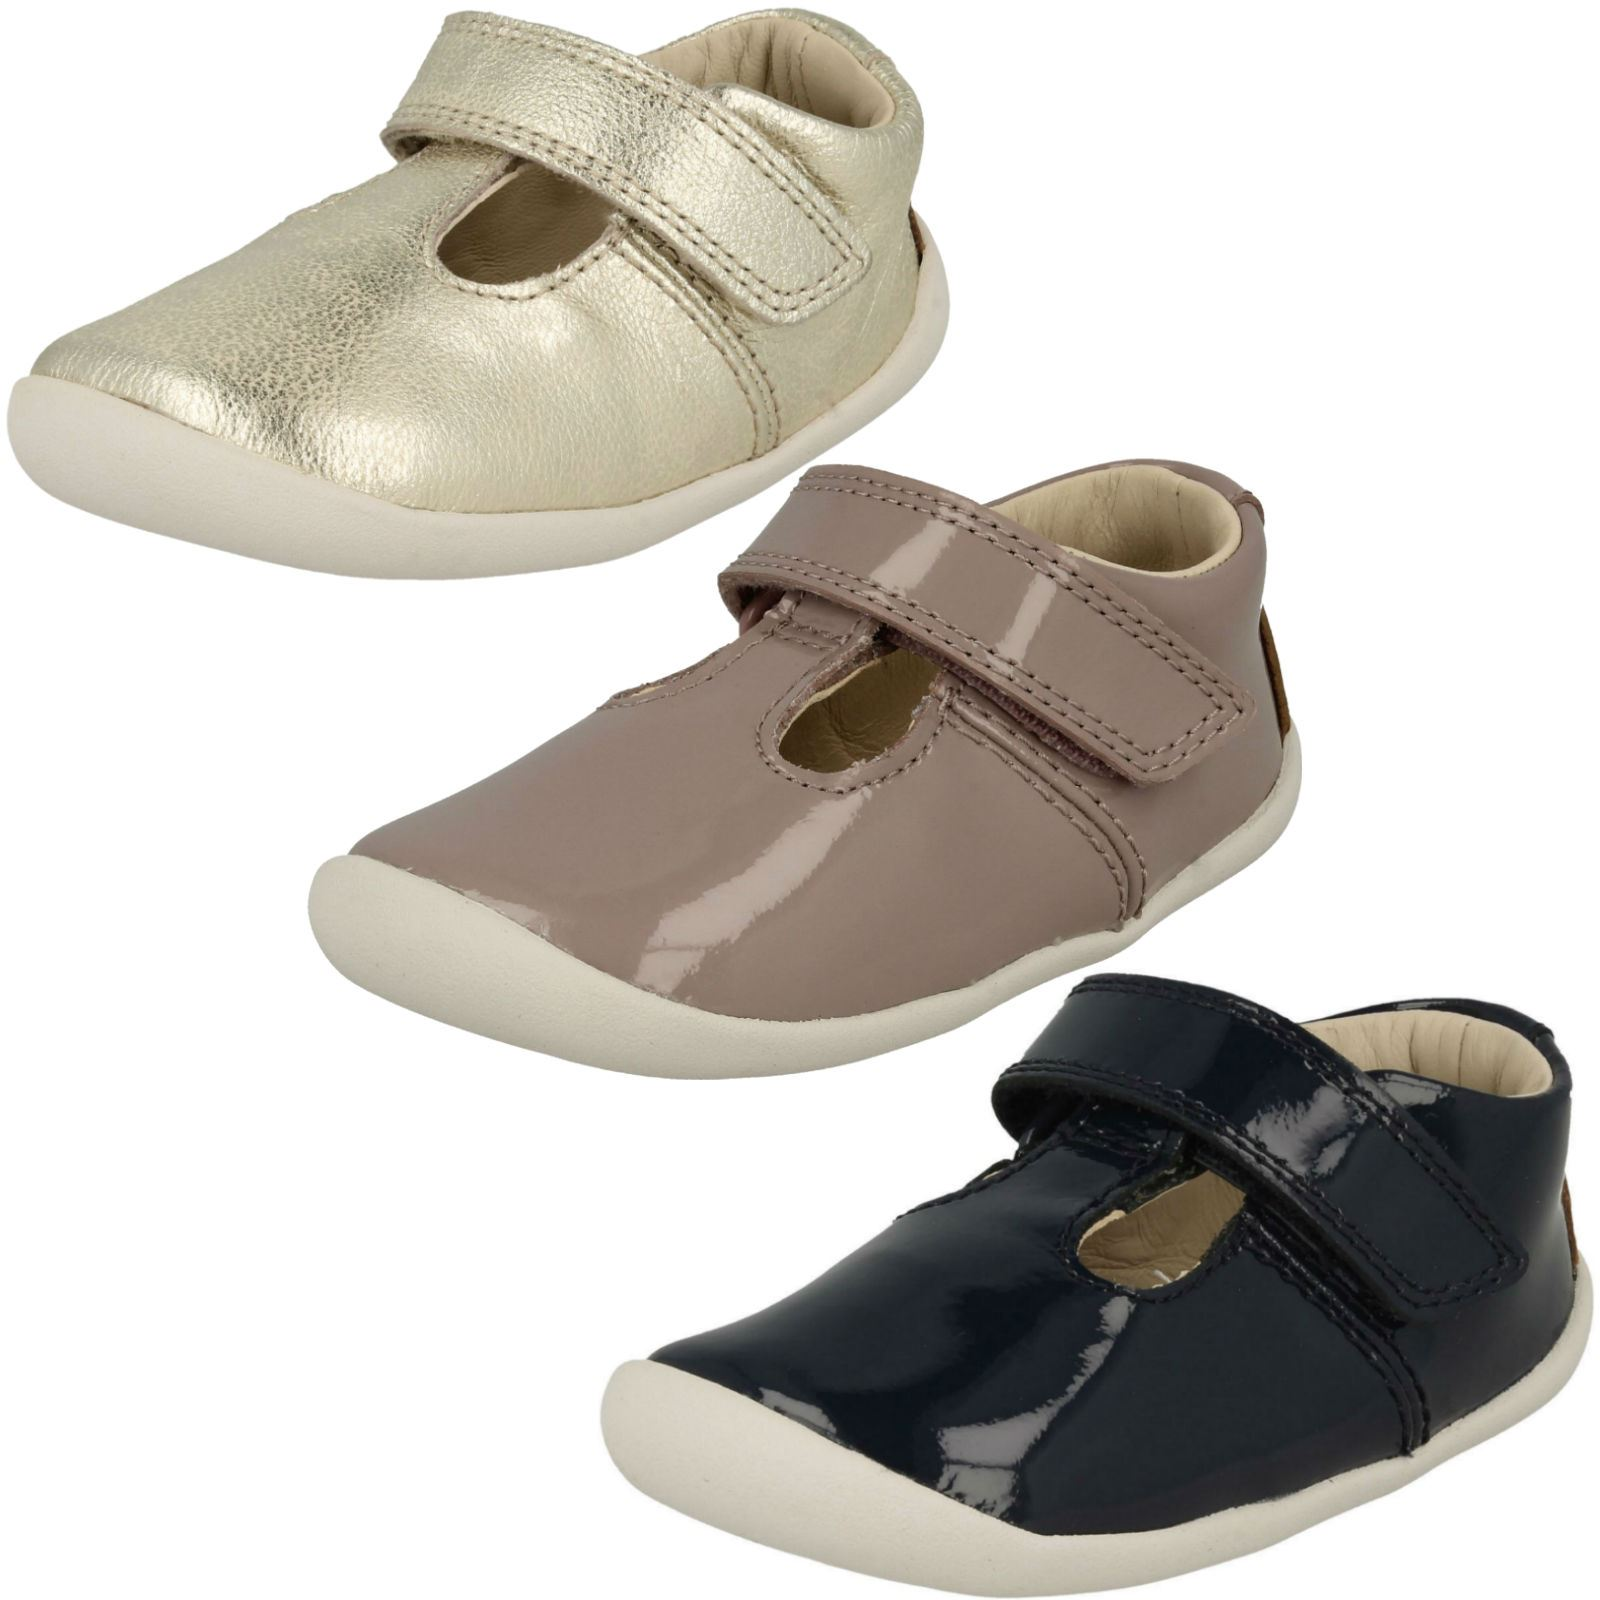 1cf6b04ae7 Girls Clarks T-Bar' First Shoes - Roamer Go | eBay